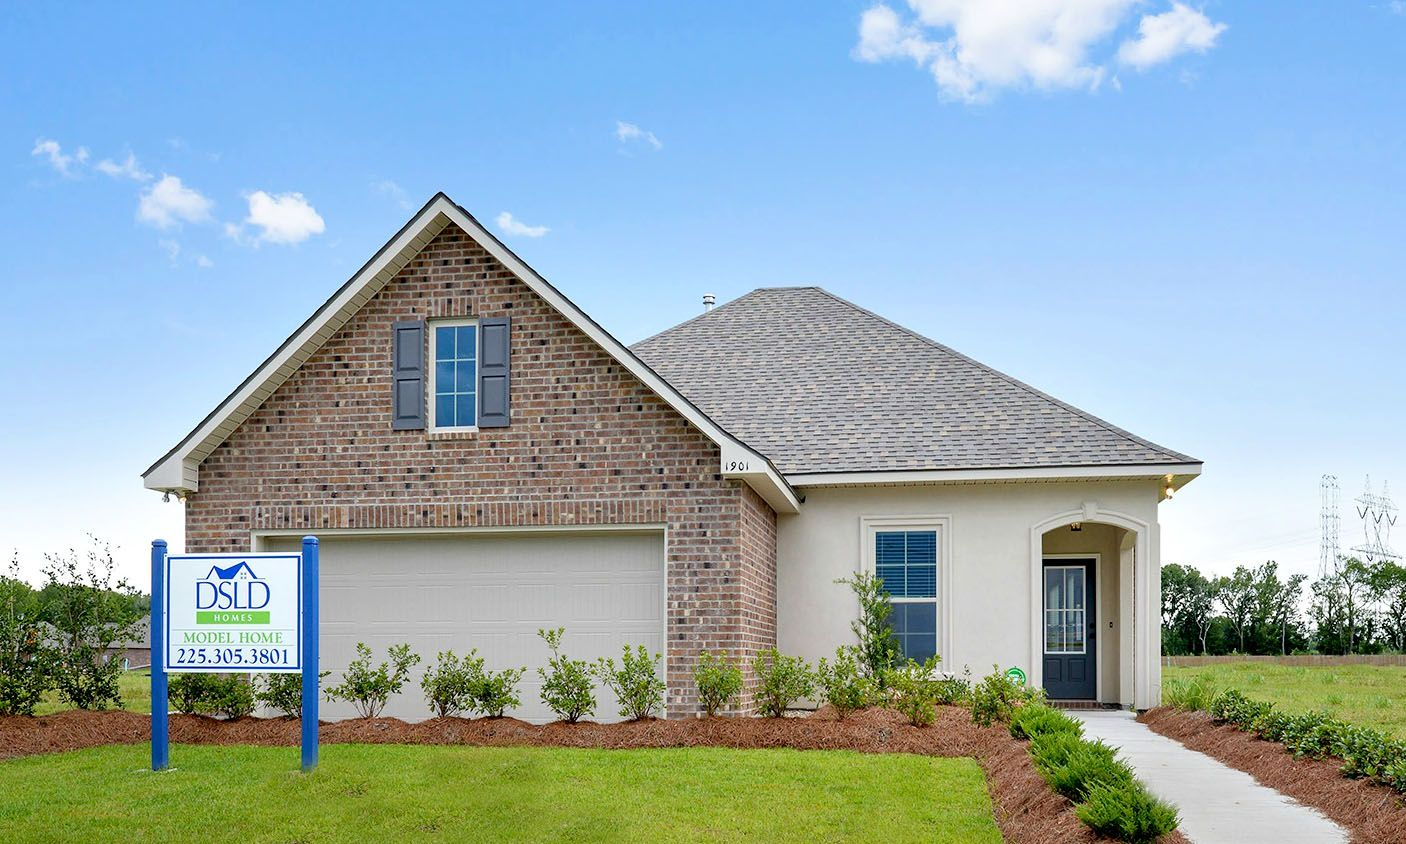 Model Home- Front Elevation - stucco- painted door- DSLD Homes- Baton Rouge area - St. Gabriel- L...:Meadow Oaks Model Home